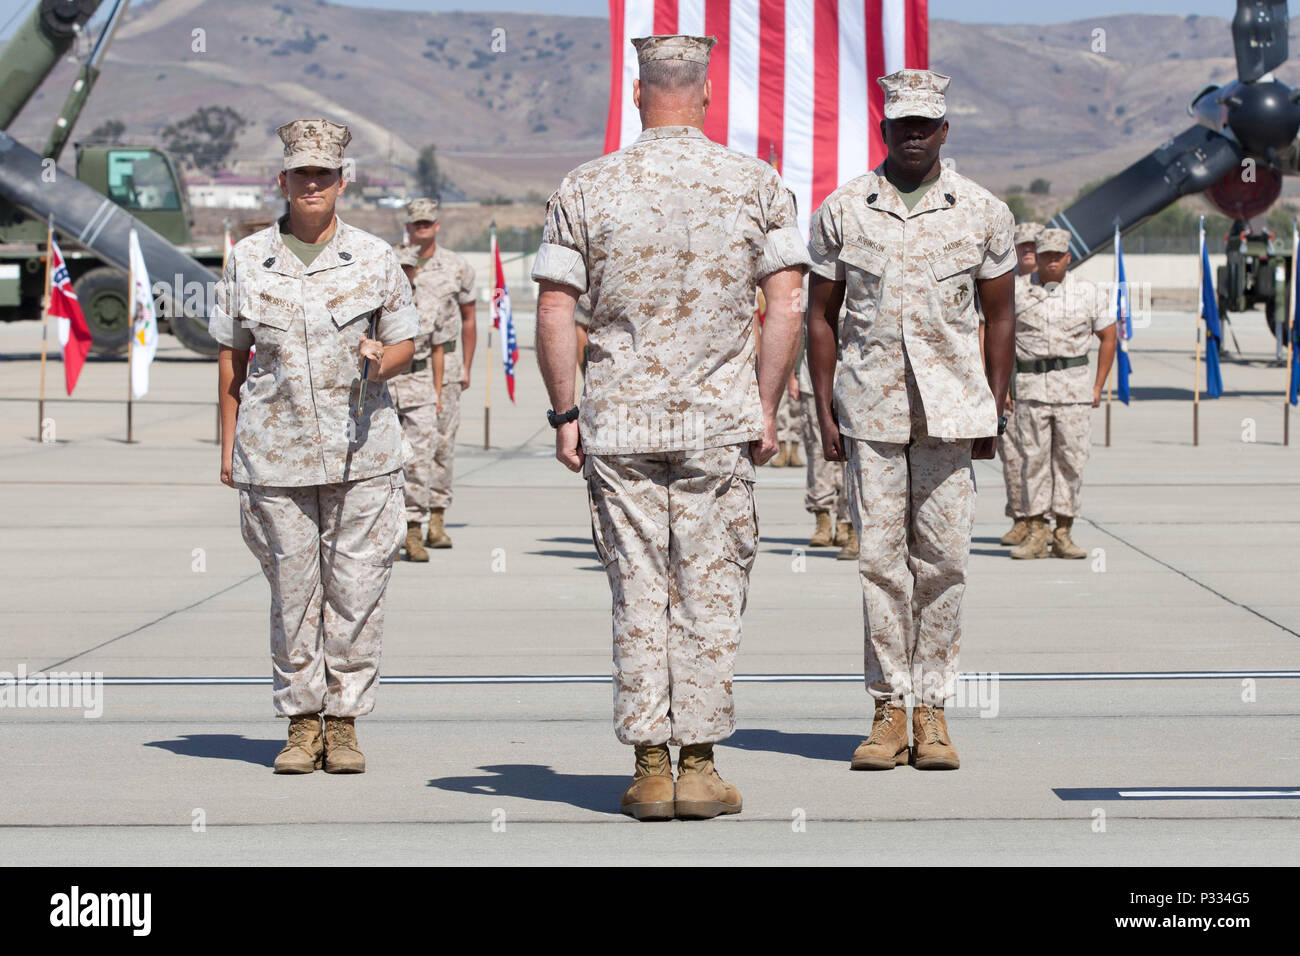 U.S. Marine Corps Sgt. Maj. Karyl J. Sisneros (left), Col. Ian R. Clark (center), and Sgt. Maj. Reginald Robinson stand at attention during the MCAS Camp Pendleton post and relief ceremony on Camp Pendleton, Calif., Aug. 31, 2016. (U.S. Marine Corps photo by Cpl. Tyler Dietrich) - Stock Image